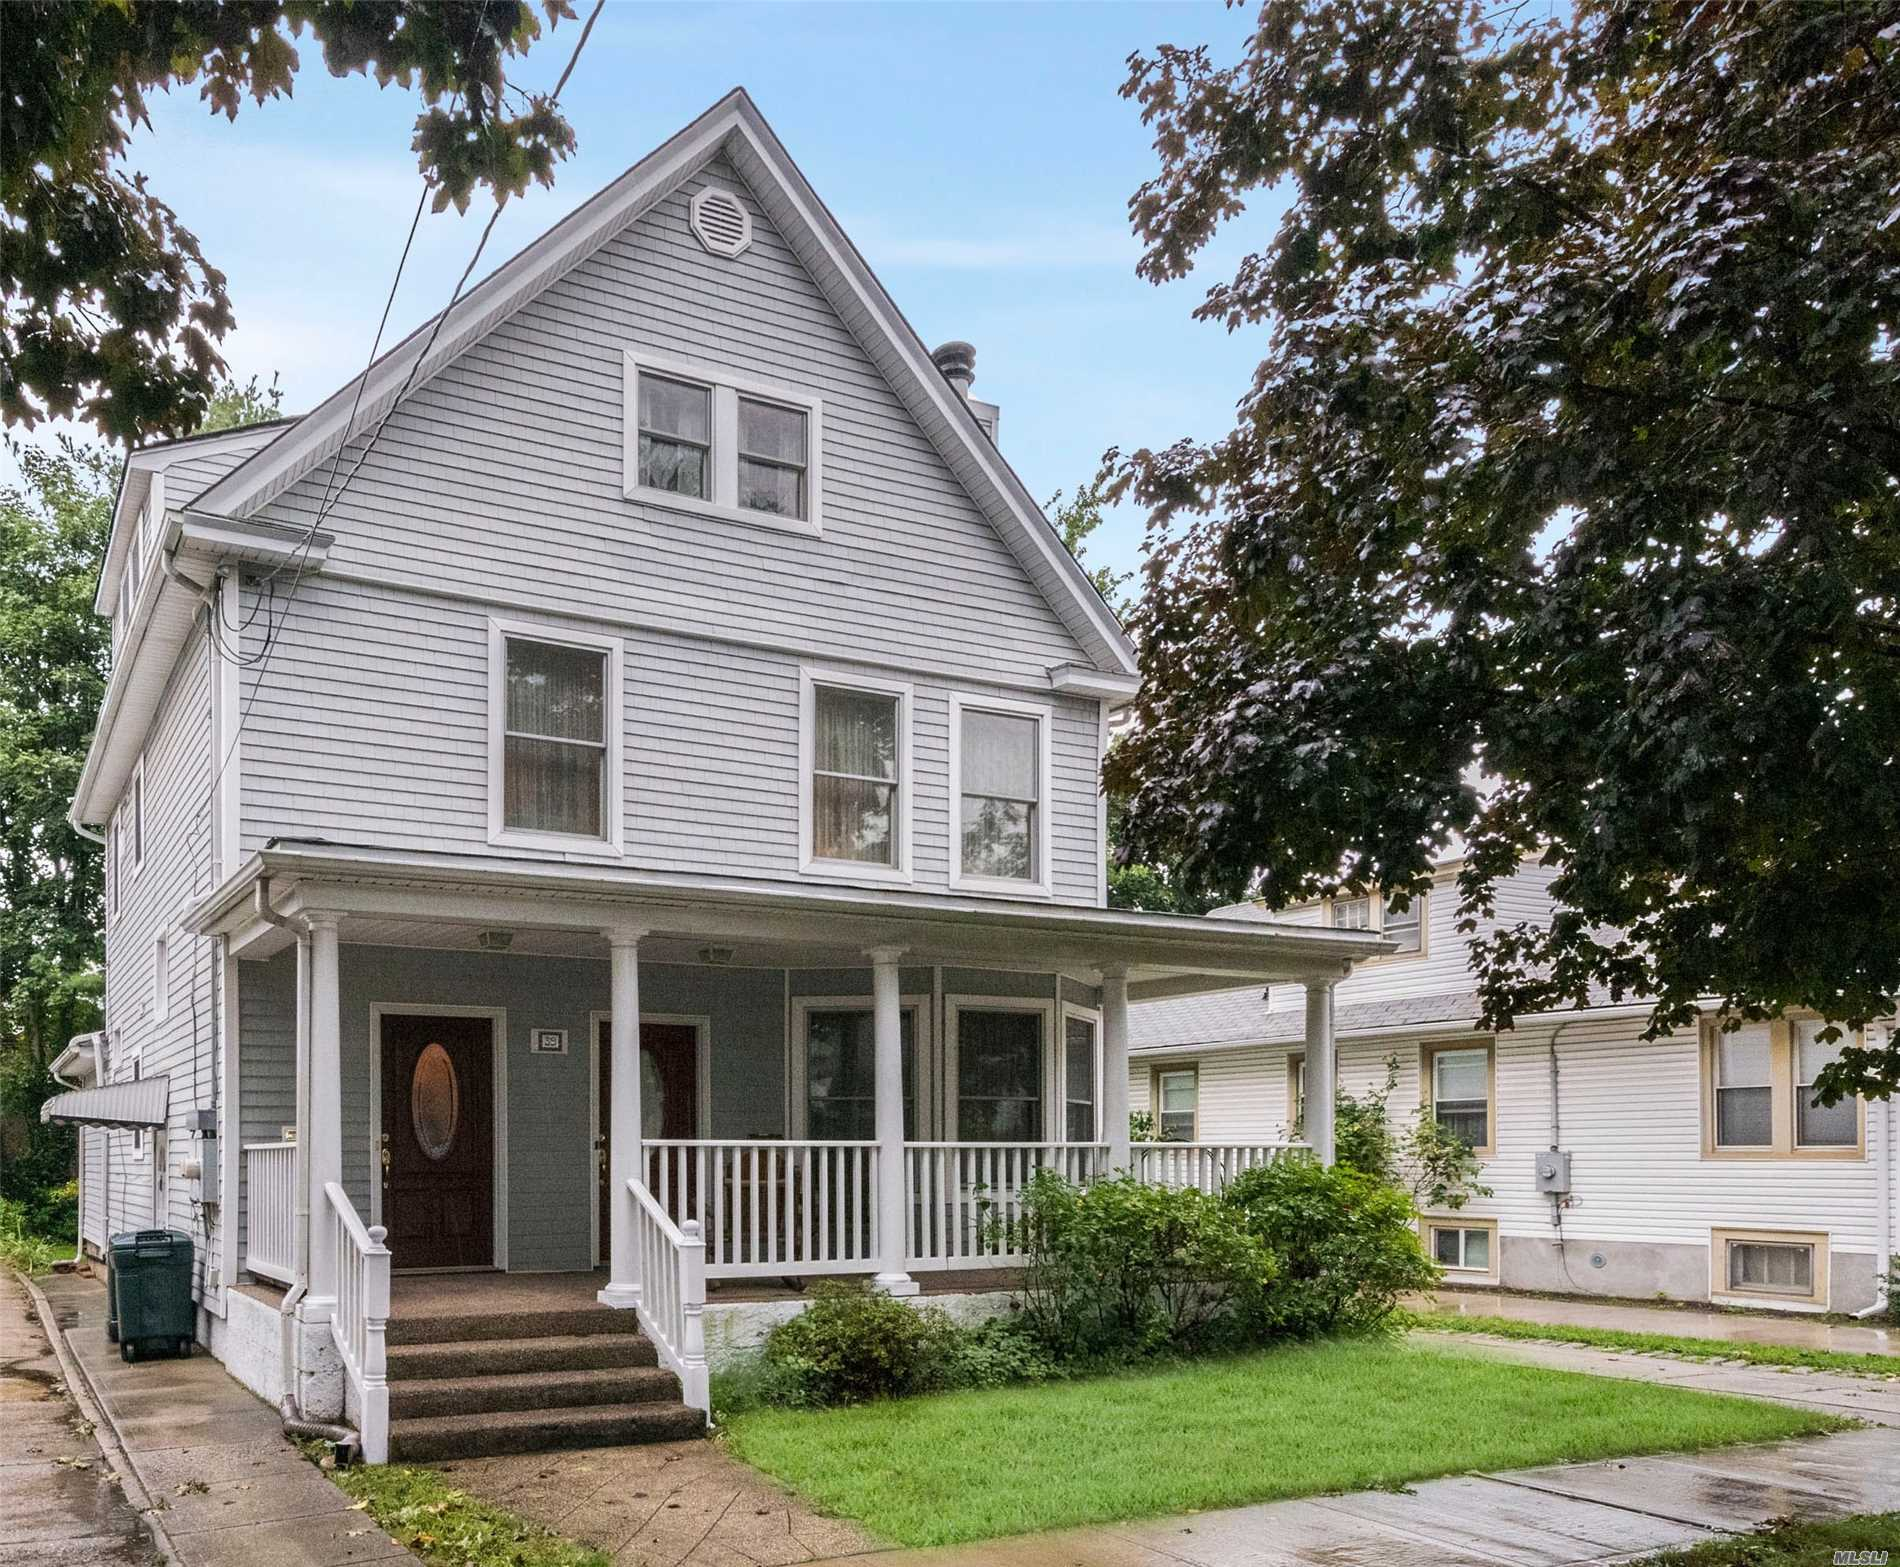 Major Price Improvement! Legal 2 Fam In Fpv Filled W/Charming Details And Low Taxes! Open Frt. Porch Leads To 2 Sep Entrances. 1st Fl: Large Lr, Fdr (Or 2nd Br) Both W/Hw Floors And Bay Windows, Eik, Br, 1.5 Ba, 2nd Fl: Large Lr W/Fplc, Fdr, Hw Floors, Eik, Full Ba, ., 3rd Fl: 3 Bdrms, Full Ba. , Full Basement W/Laundry Facilities And Storage., Separate Gas/Elec., Siding 2010, Pella Windows, Cac, Close To Lirr, Shopping And Restaurants.